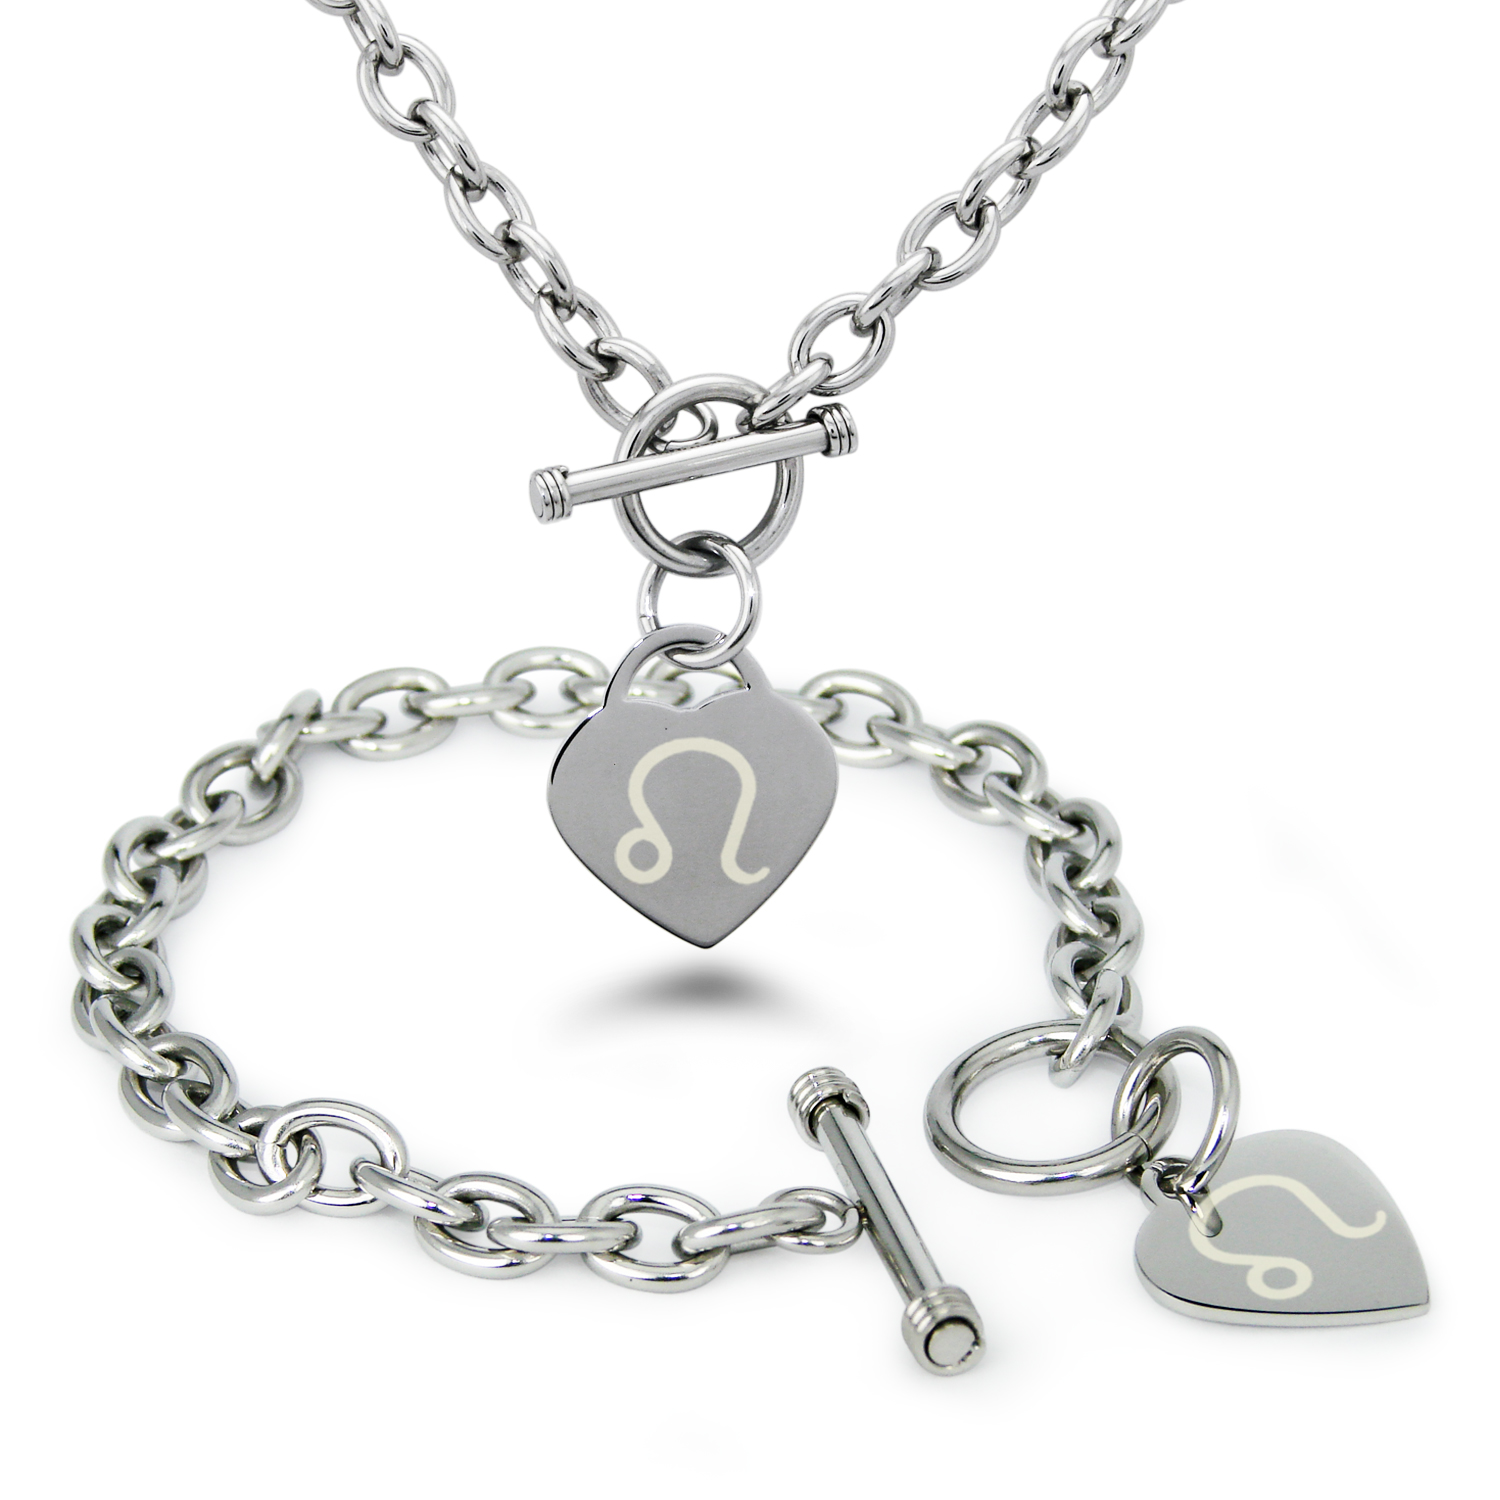 Stainless Steel Leo Astrology Symbol Heart Charm Toggle Bracelet & Necklace